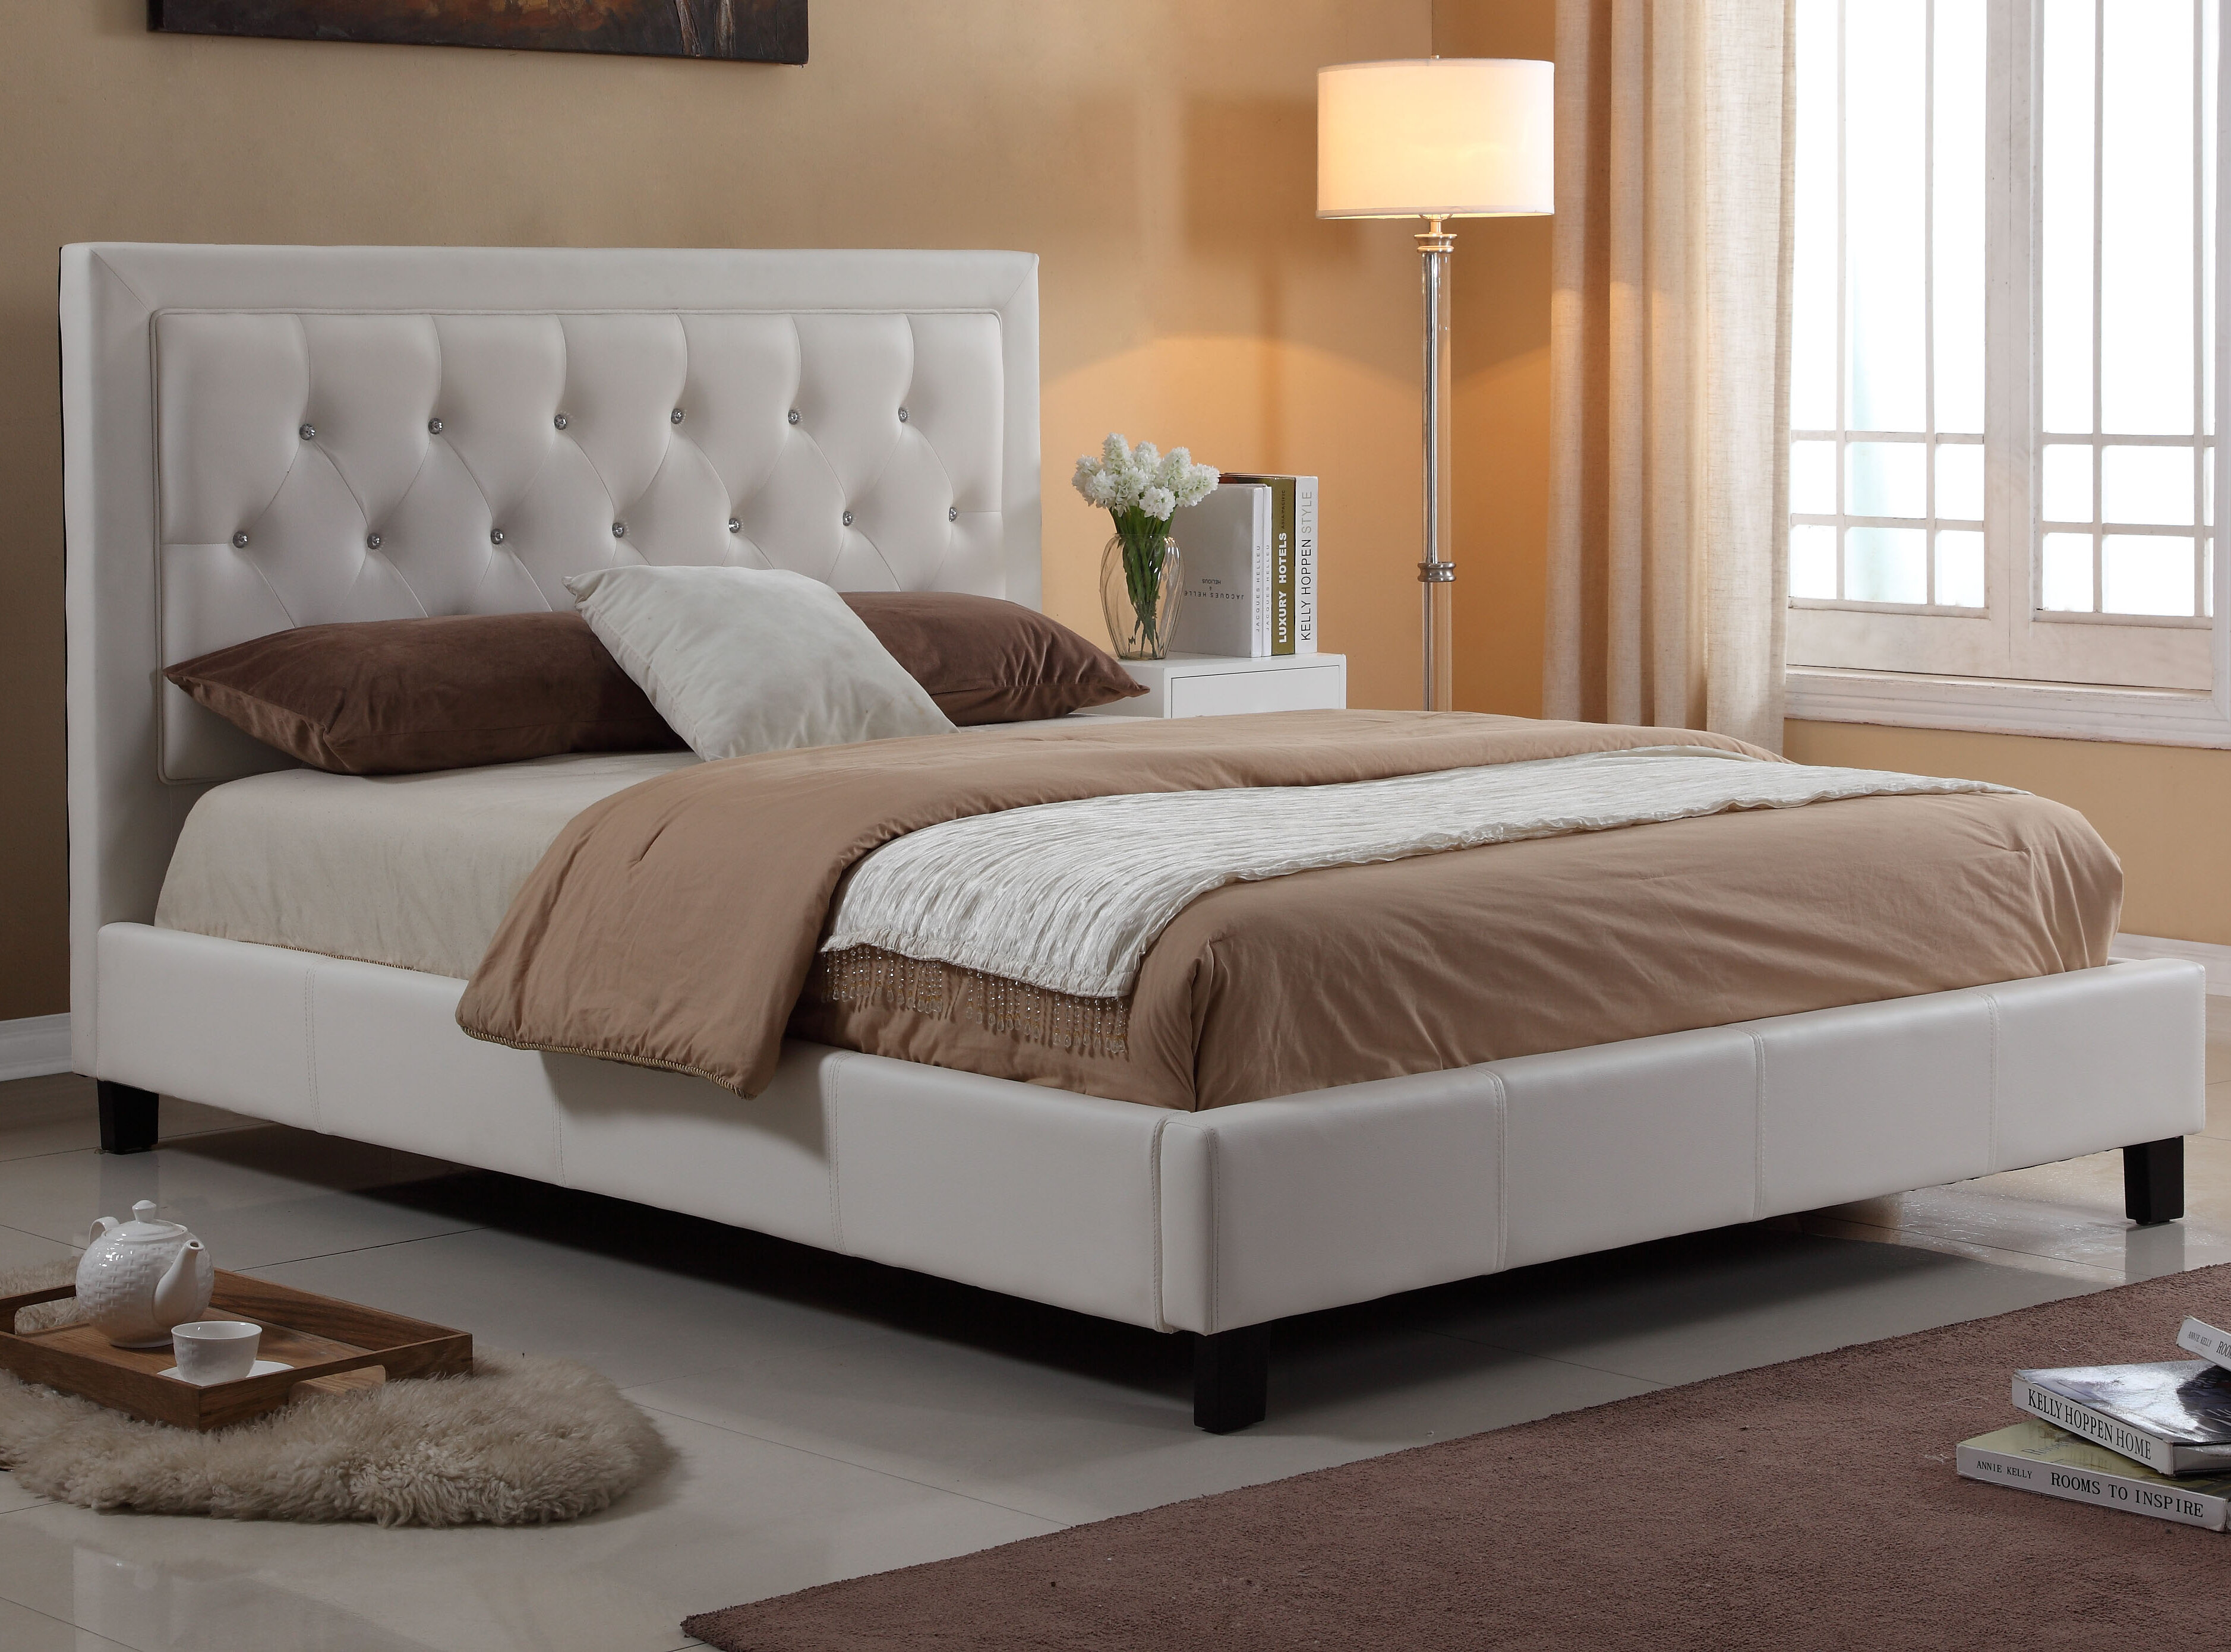 basketball off king platform white headboard tufted headboards full wood queen frame leather ideas side fabric diamond upholstered cal where to size buy with gray